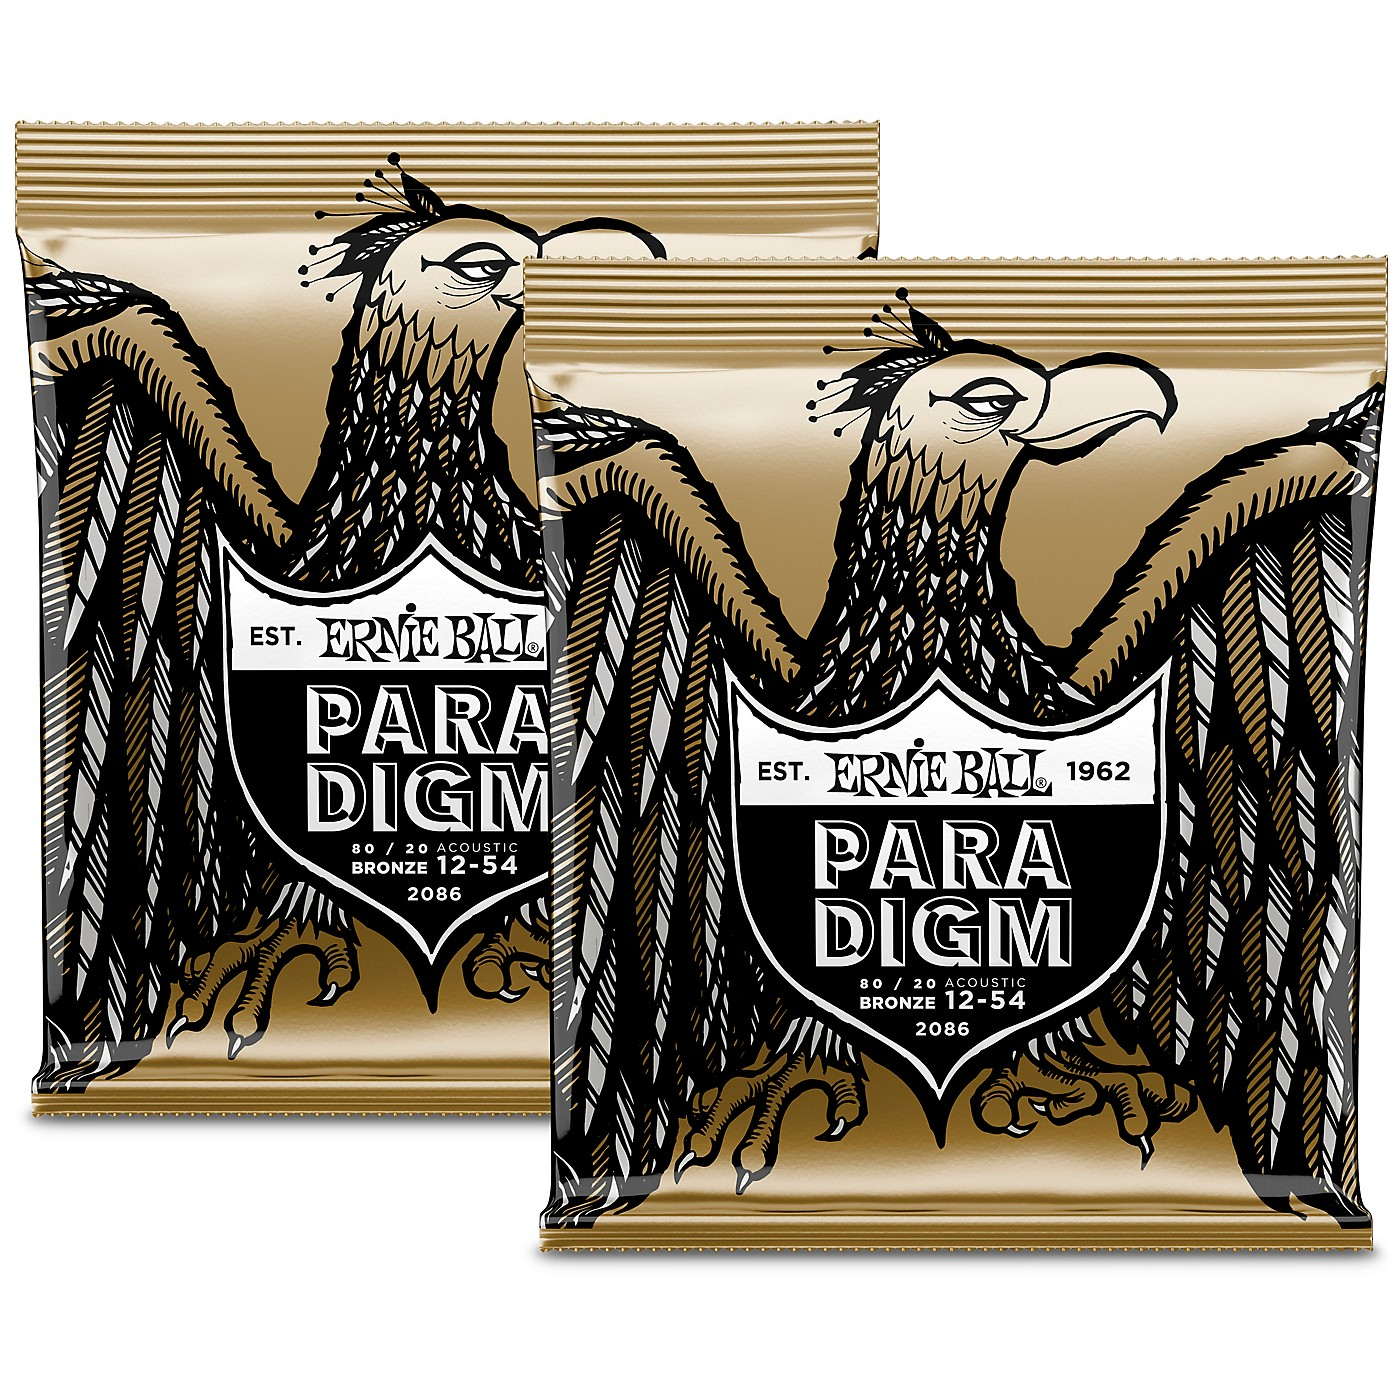 Ernie Ball Paradigm 80/20 Acoustic Guitar Strings Medium Light (2-Pack) thumbnail